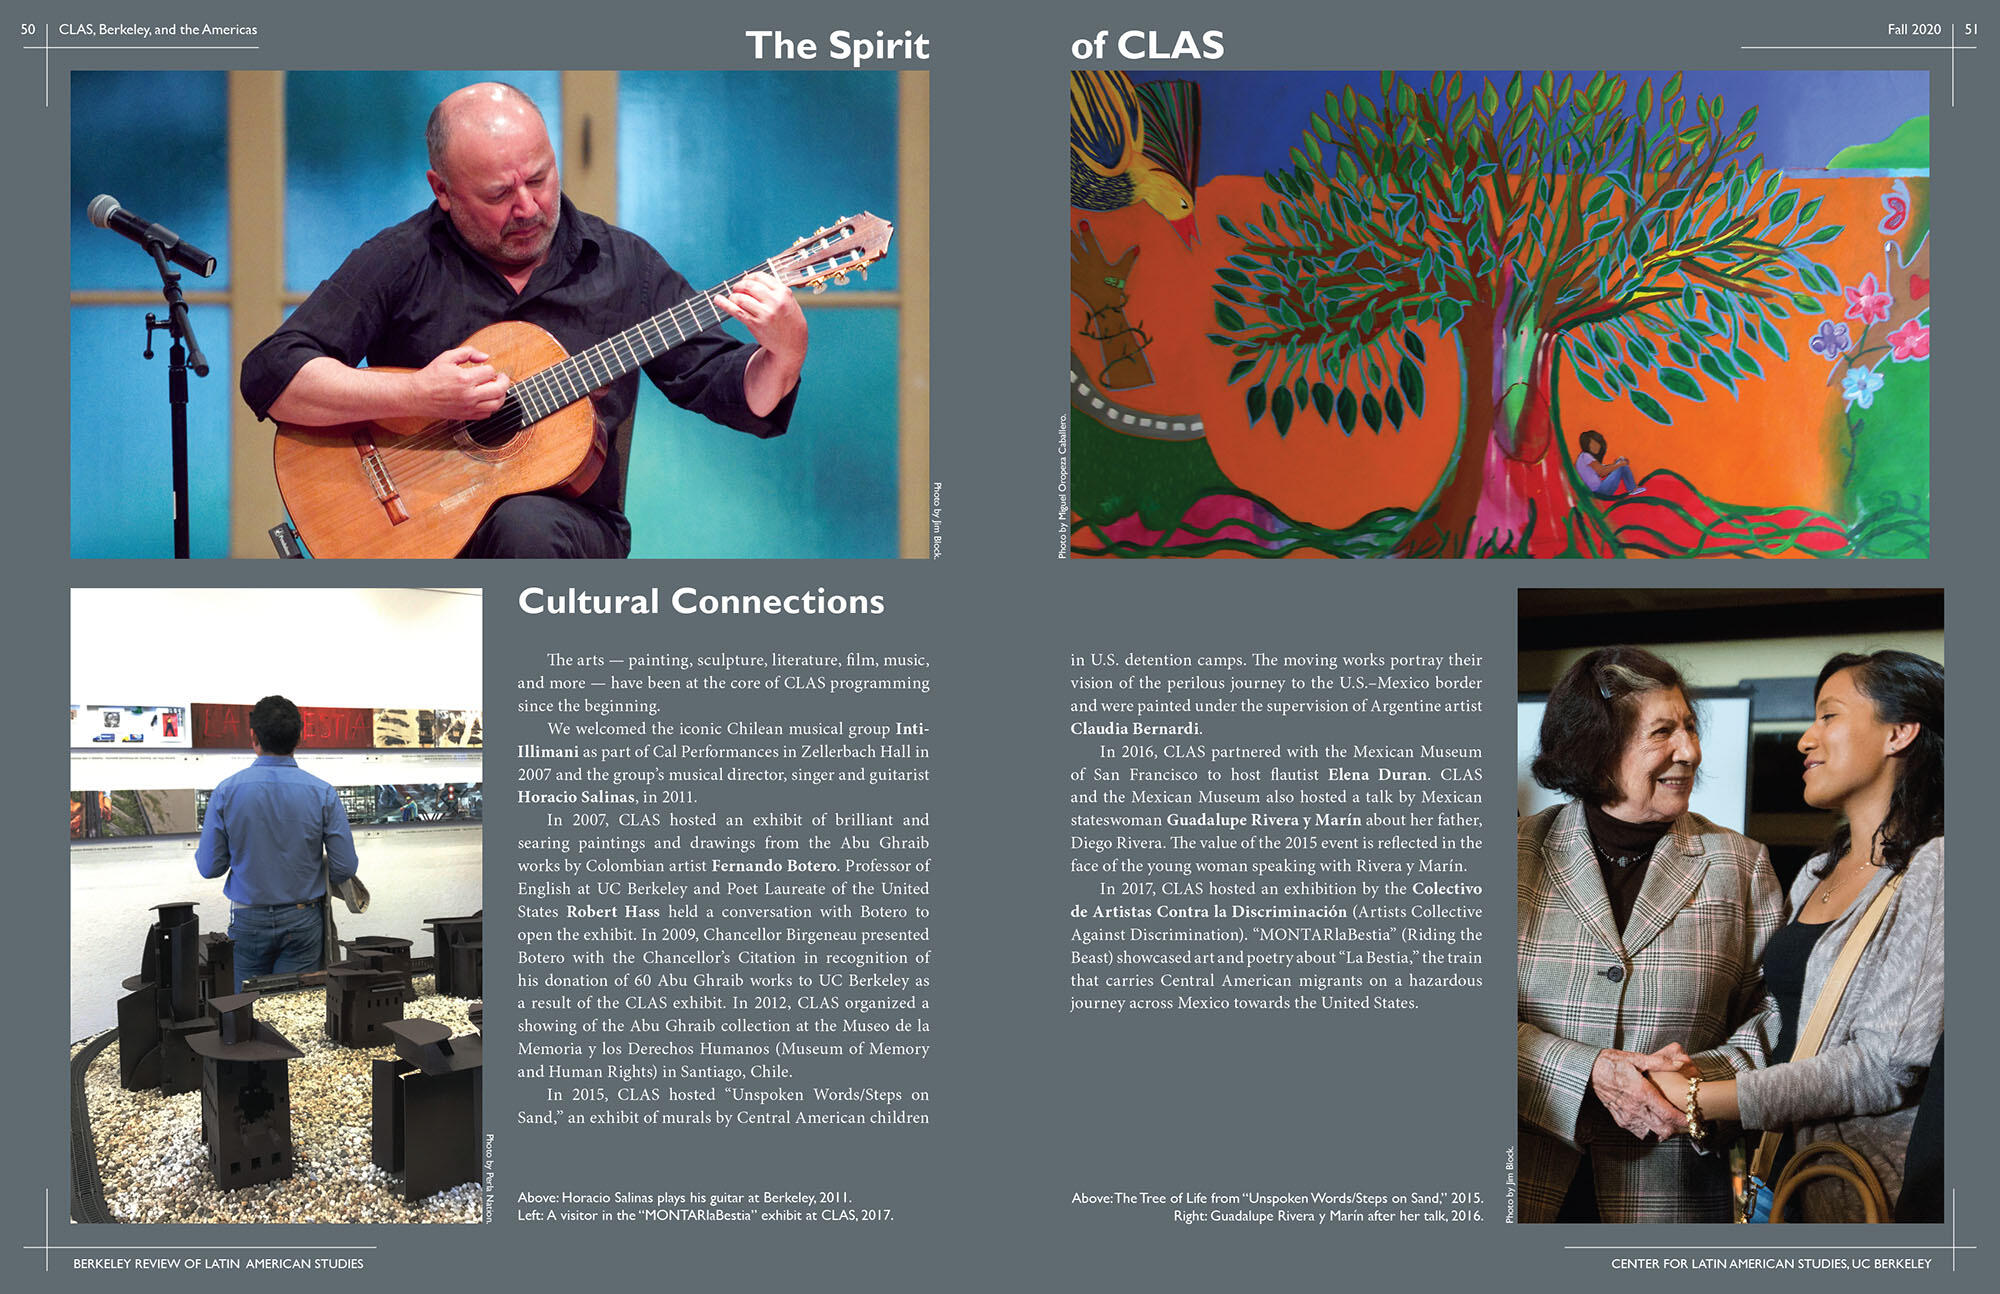 Two pages dedicated to cultural connections at CLAS, including Horacio Salinas, Guadelupe Rivera y Marin, connections with The Mexican Museum of San Francisco, and Claudia Bernardi. (Image from CLAS.)